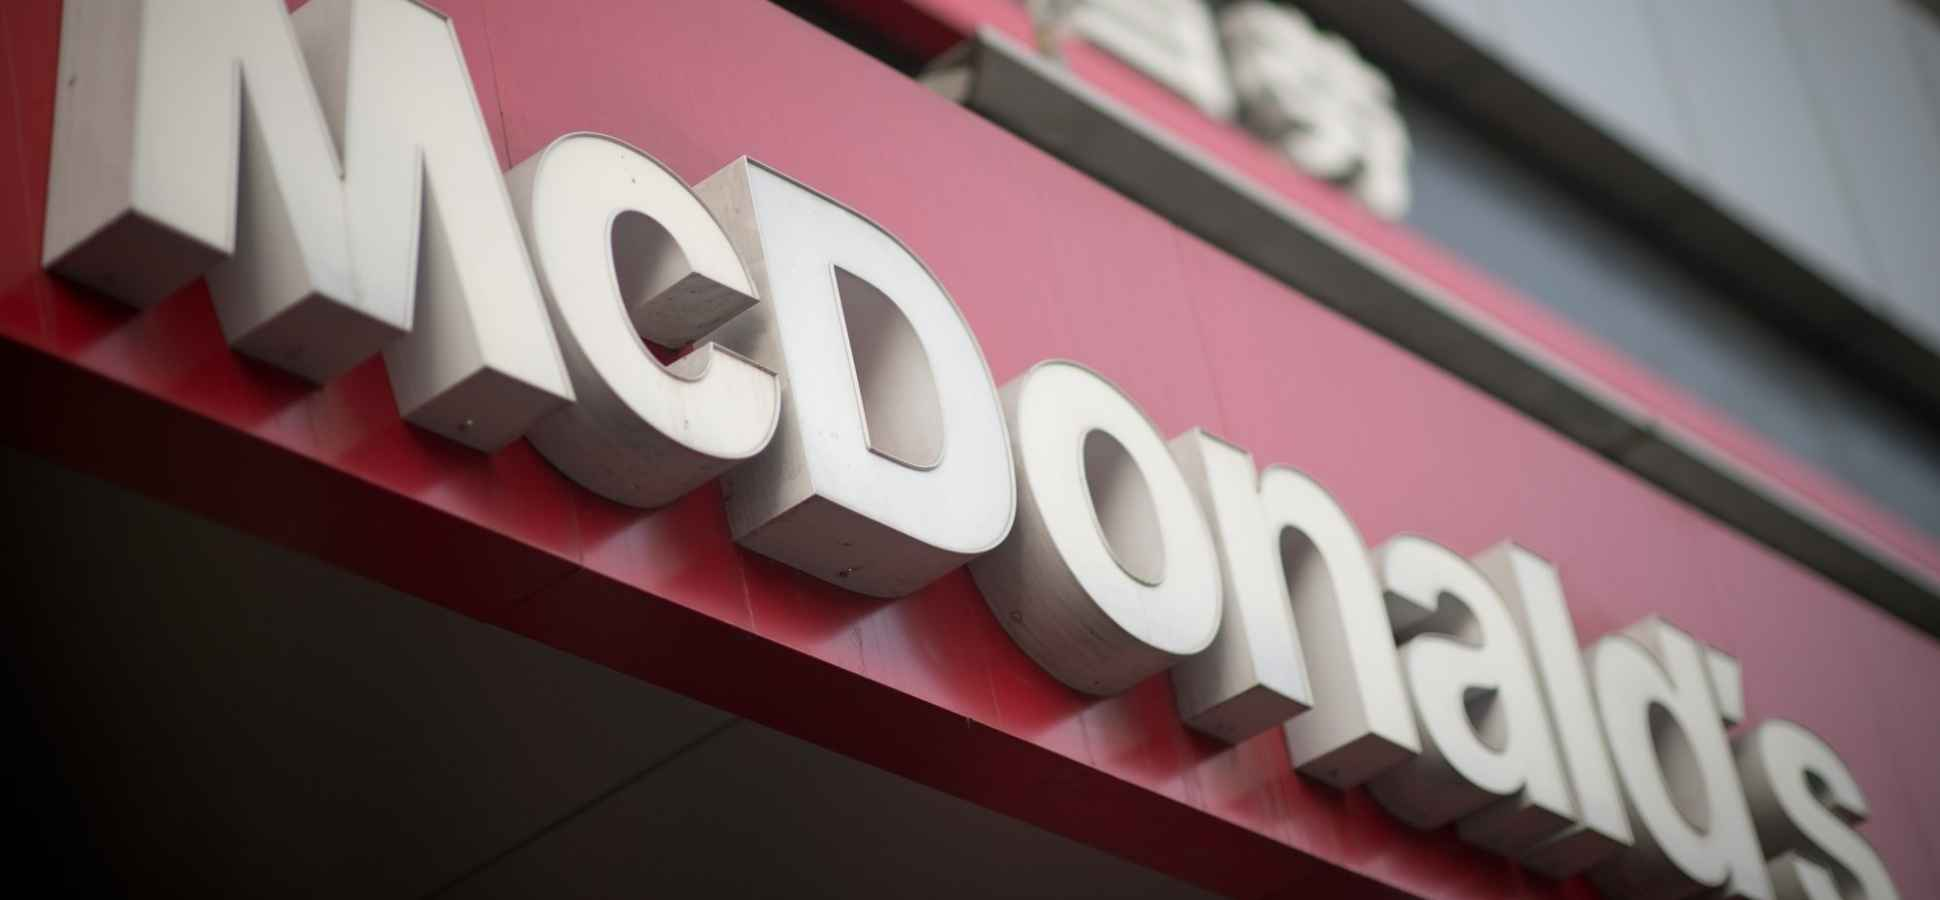 McDonald's Just Found a Revolutionary Way of Dealing With Drunk Customers